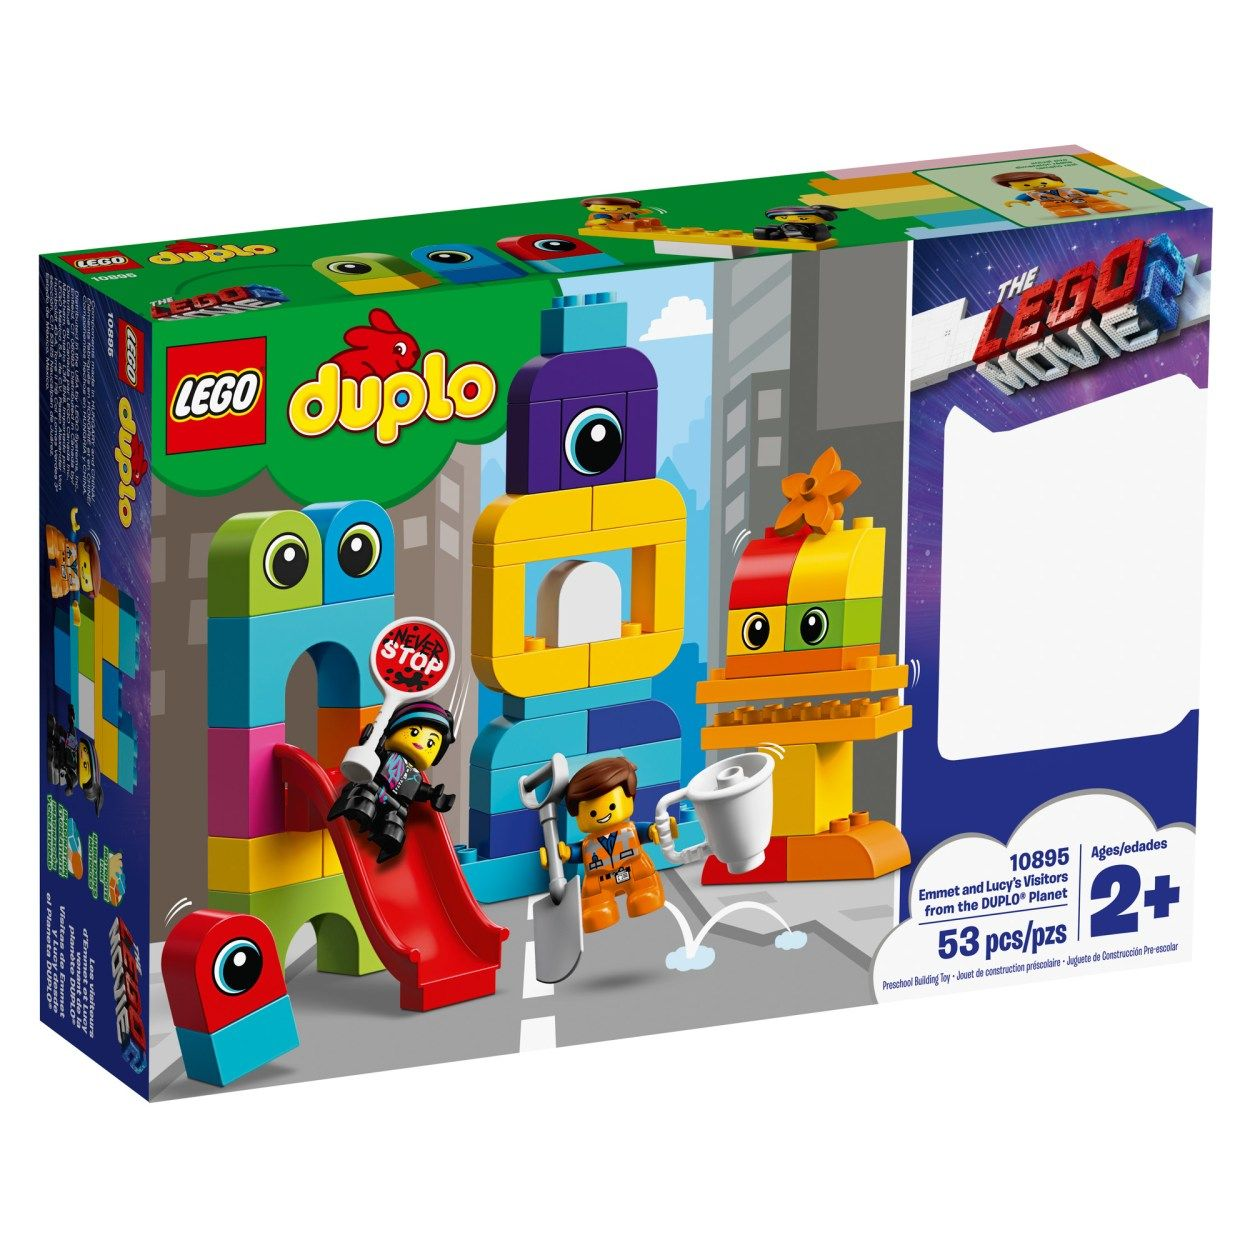 The Lego Movie 2 Sets Now Available With Free Movie Tickets Offer News The Brothers Brick Lego Duplo Duplo Lego Movie